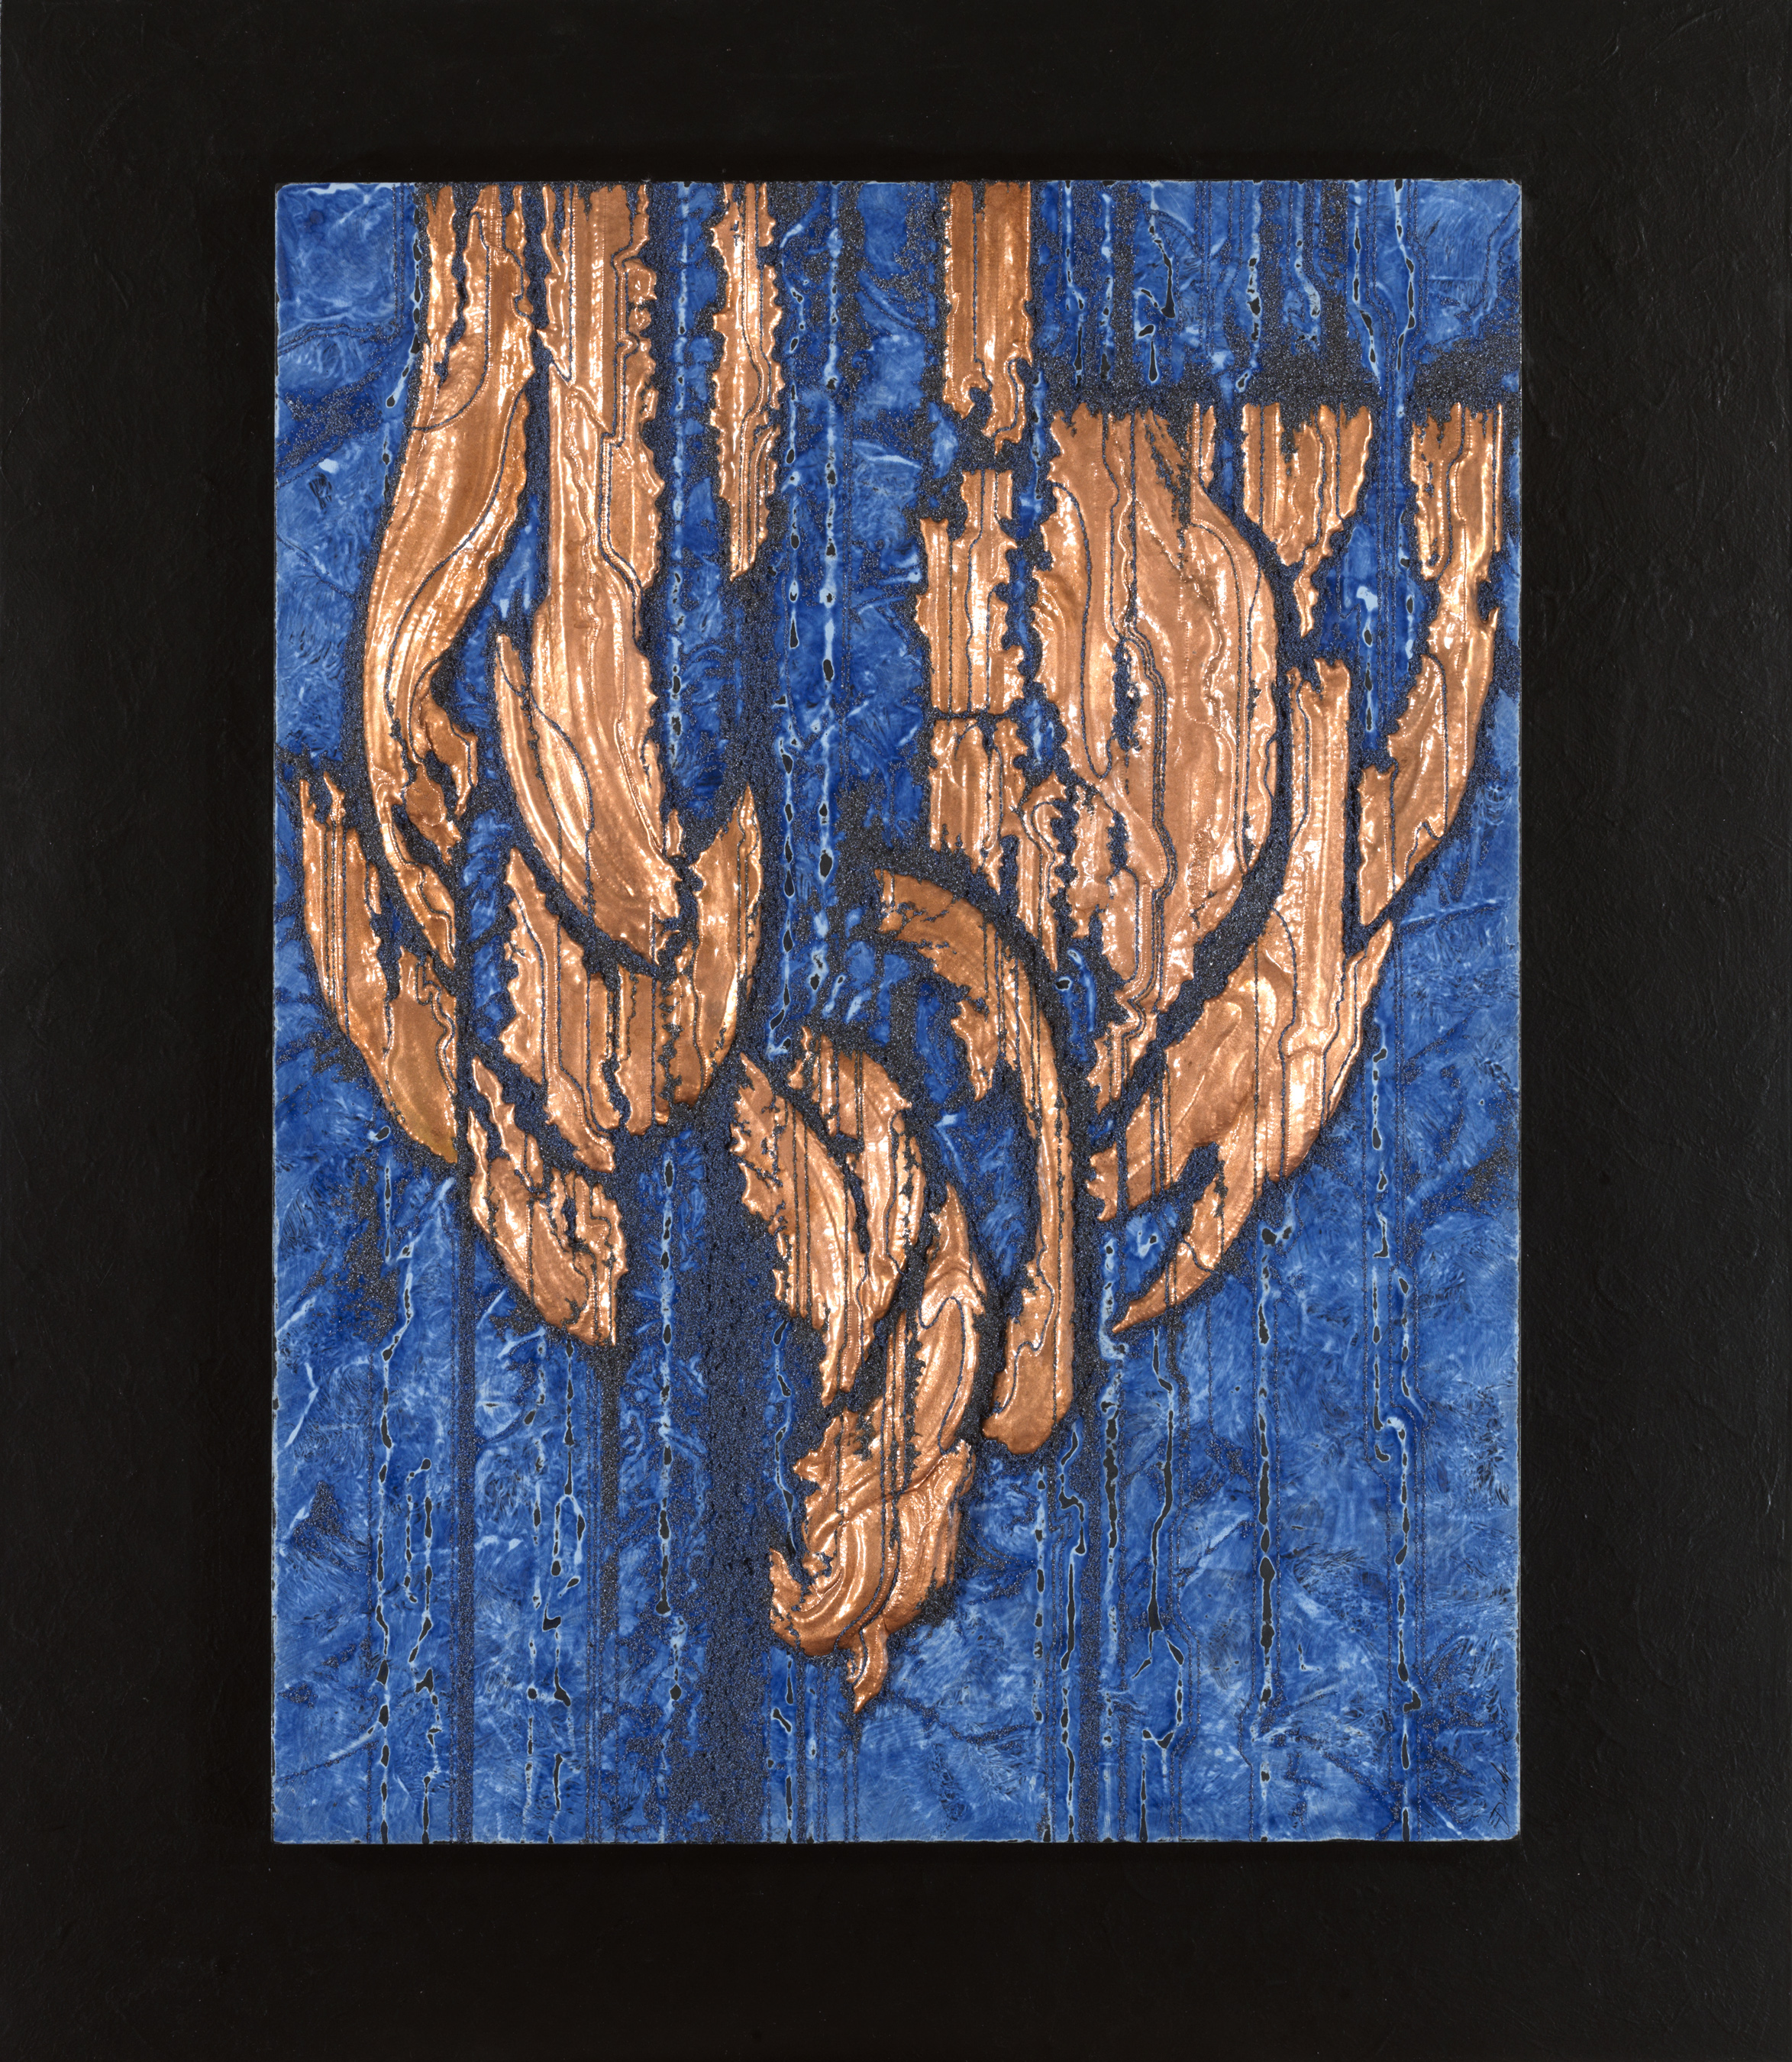 WEEPING BANYAN 3 , 2015, 30 x 26 x 2 inches. Copper repoussé elements, acrylic mineral particles and threads, and acrylic on wood panel.